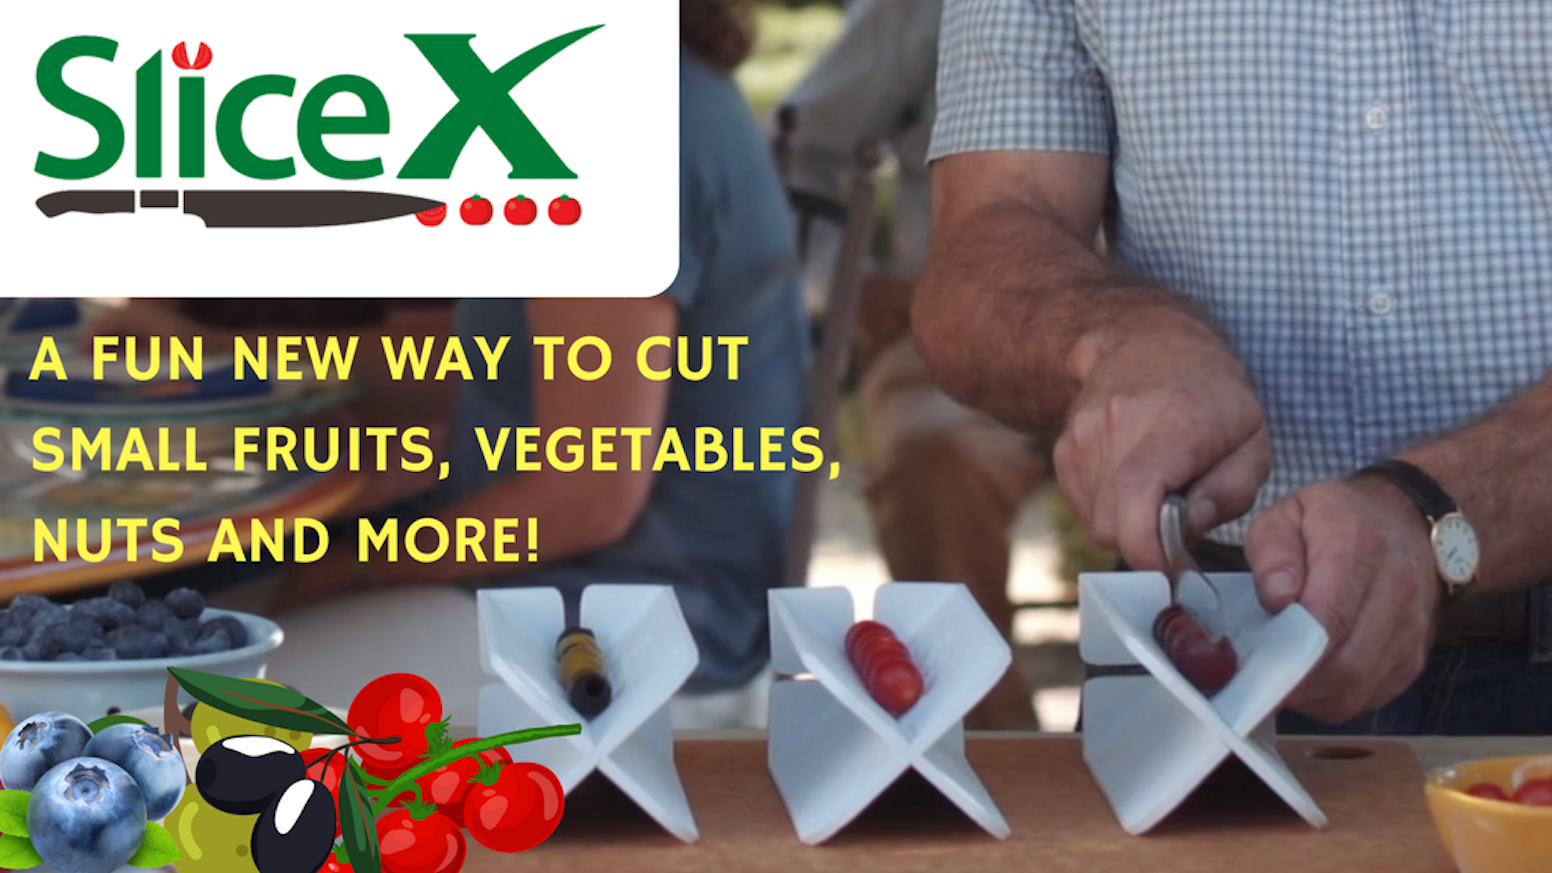 SliceX is a redesigned cutting board that makes slicing small, round produce faster and safer.  Have more FUN in the kitchen!